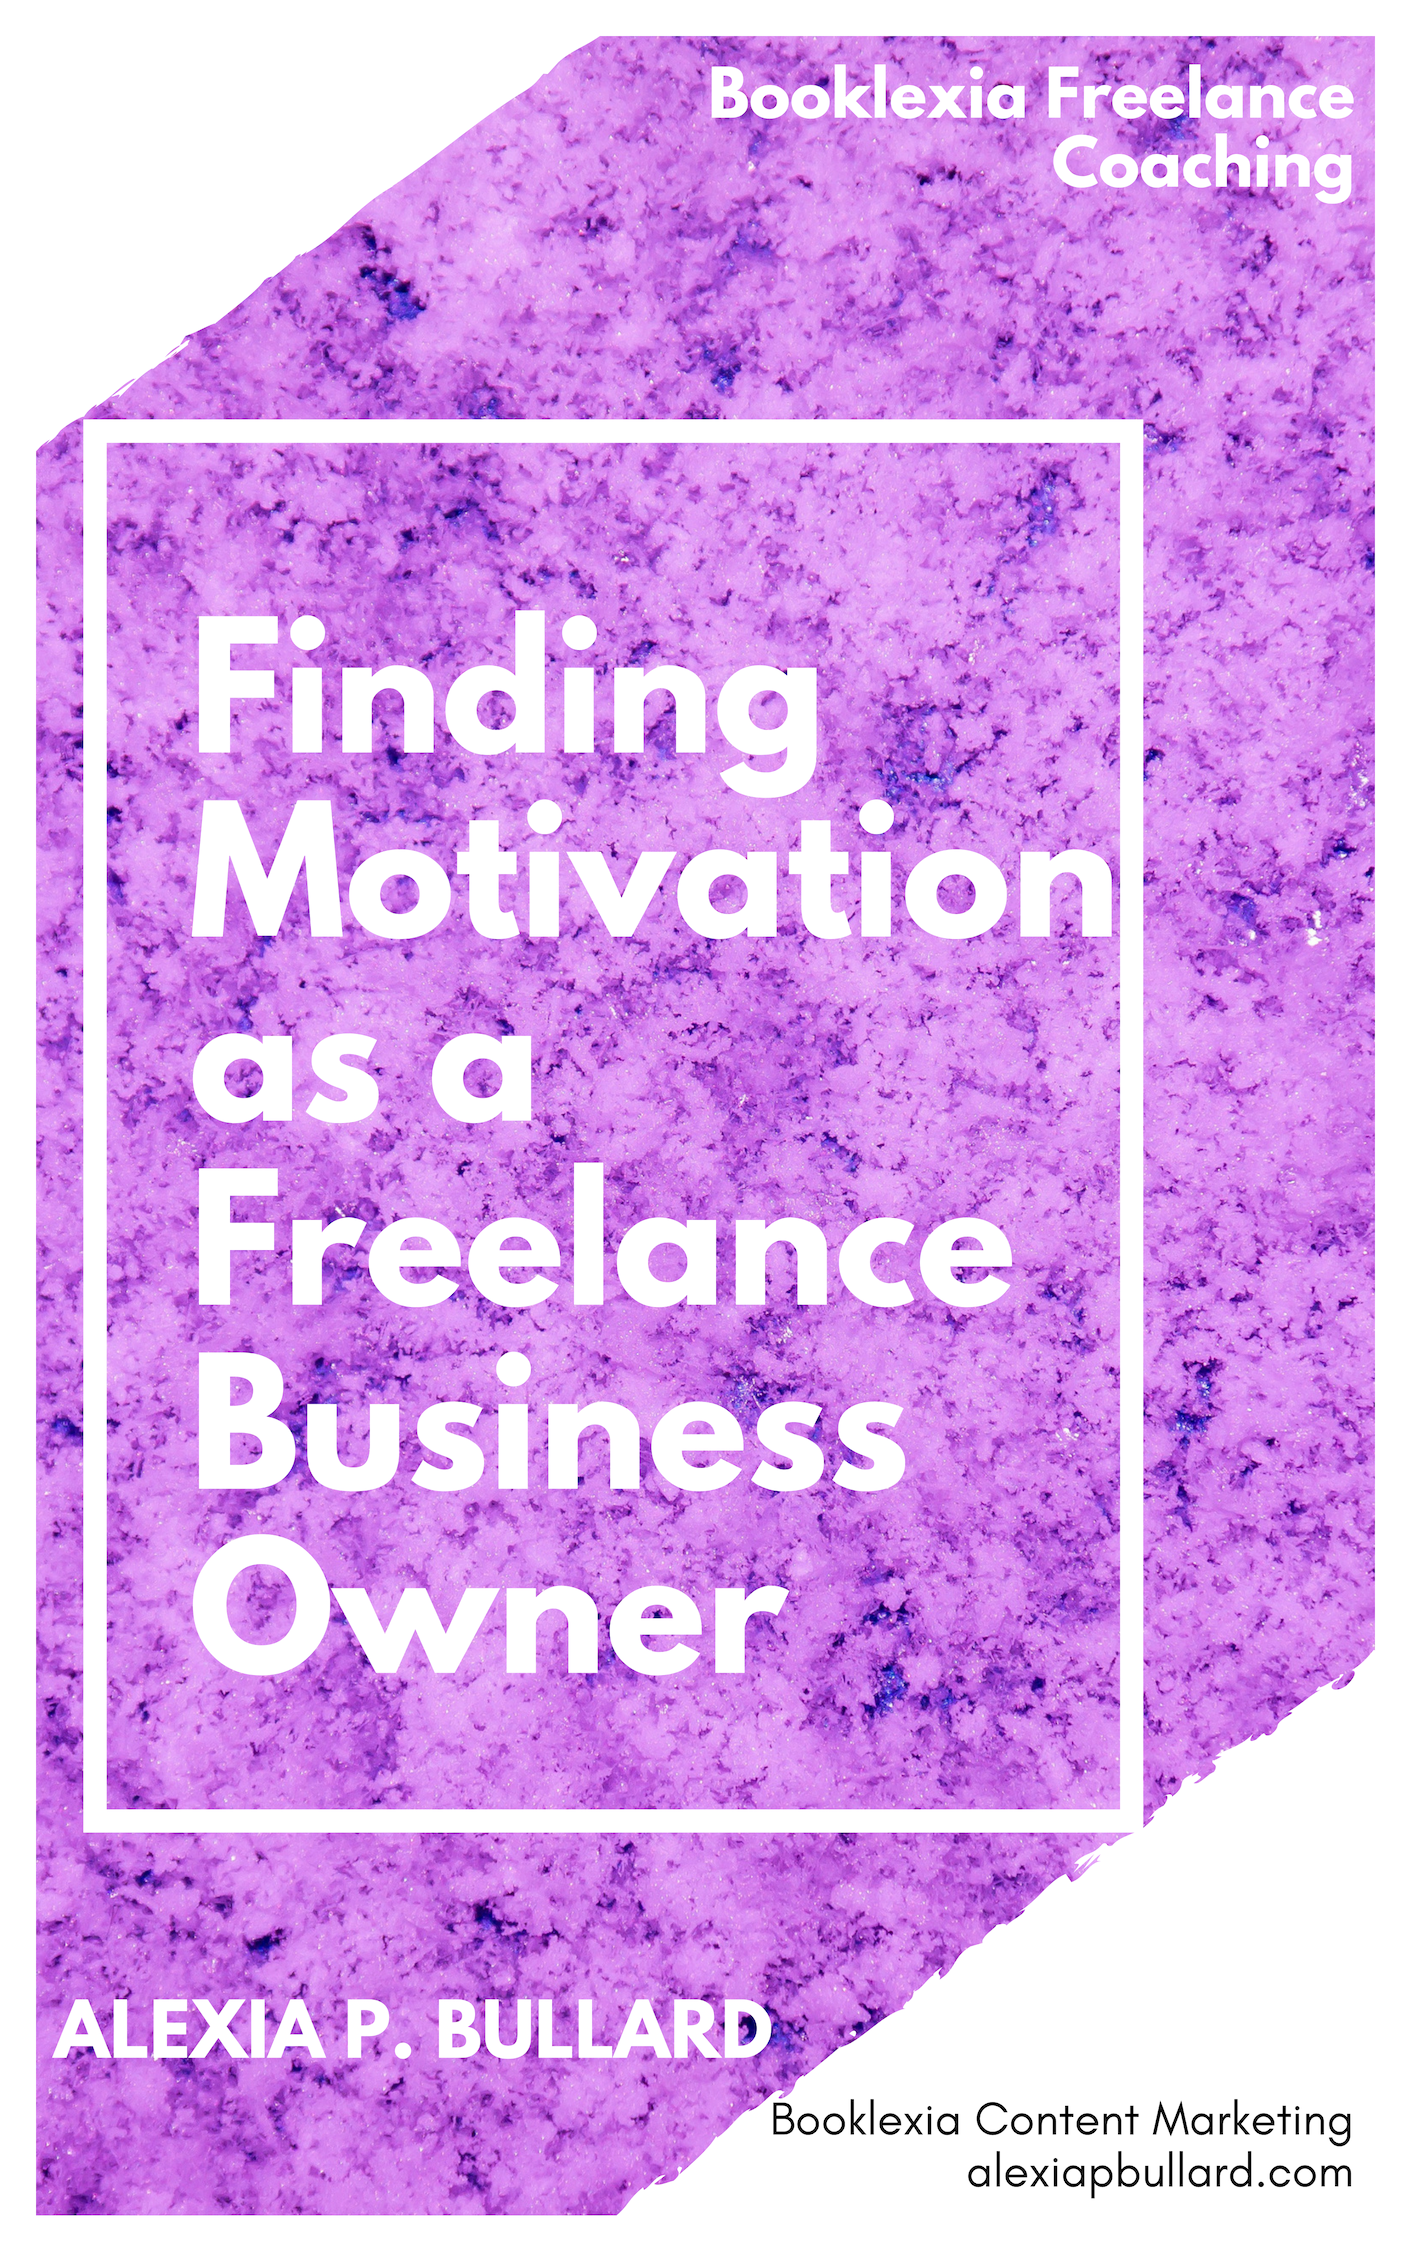 Finding Motivation as a Freelance Business Owner | Booklexia Content Marketing